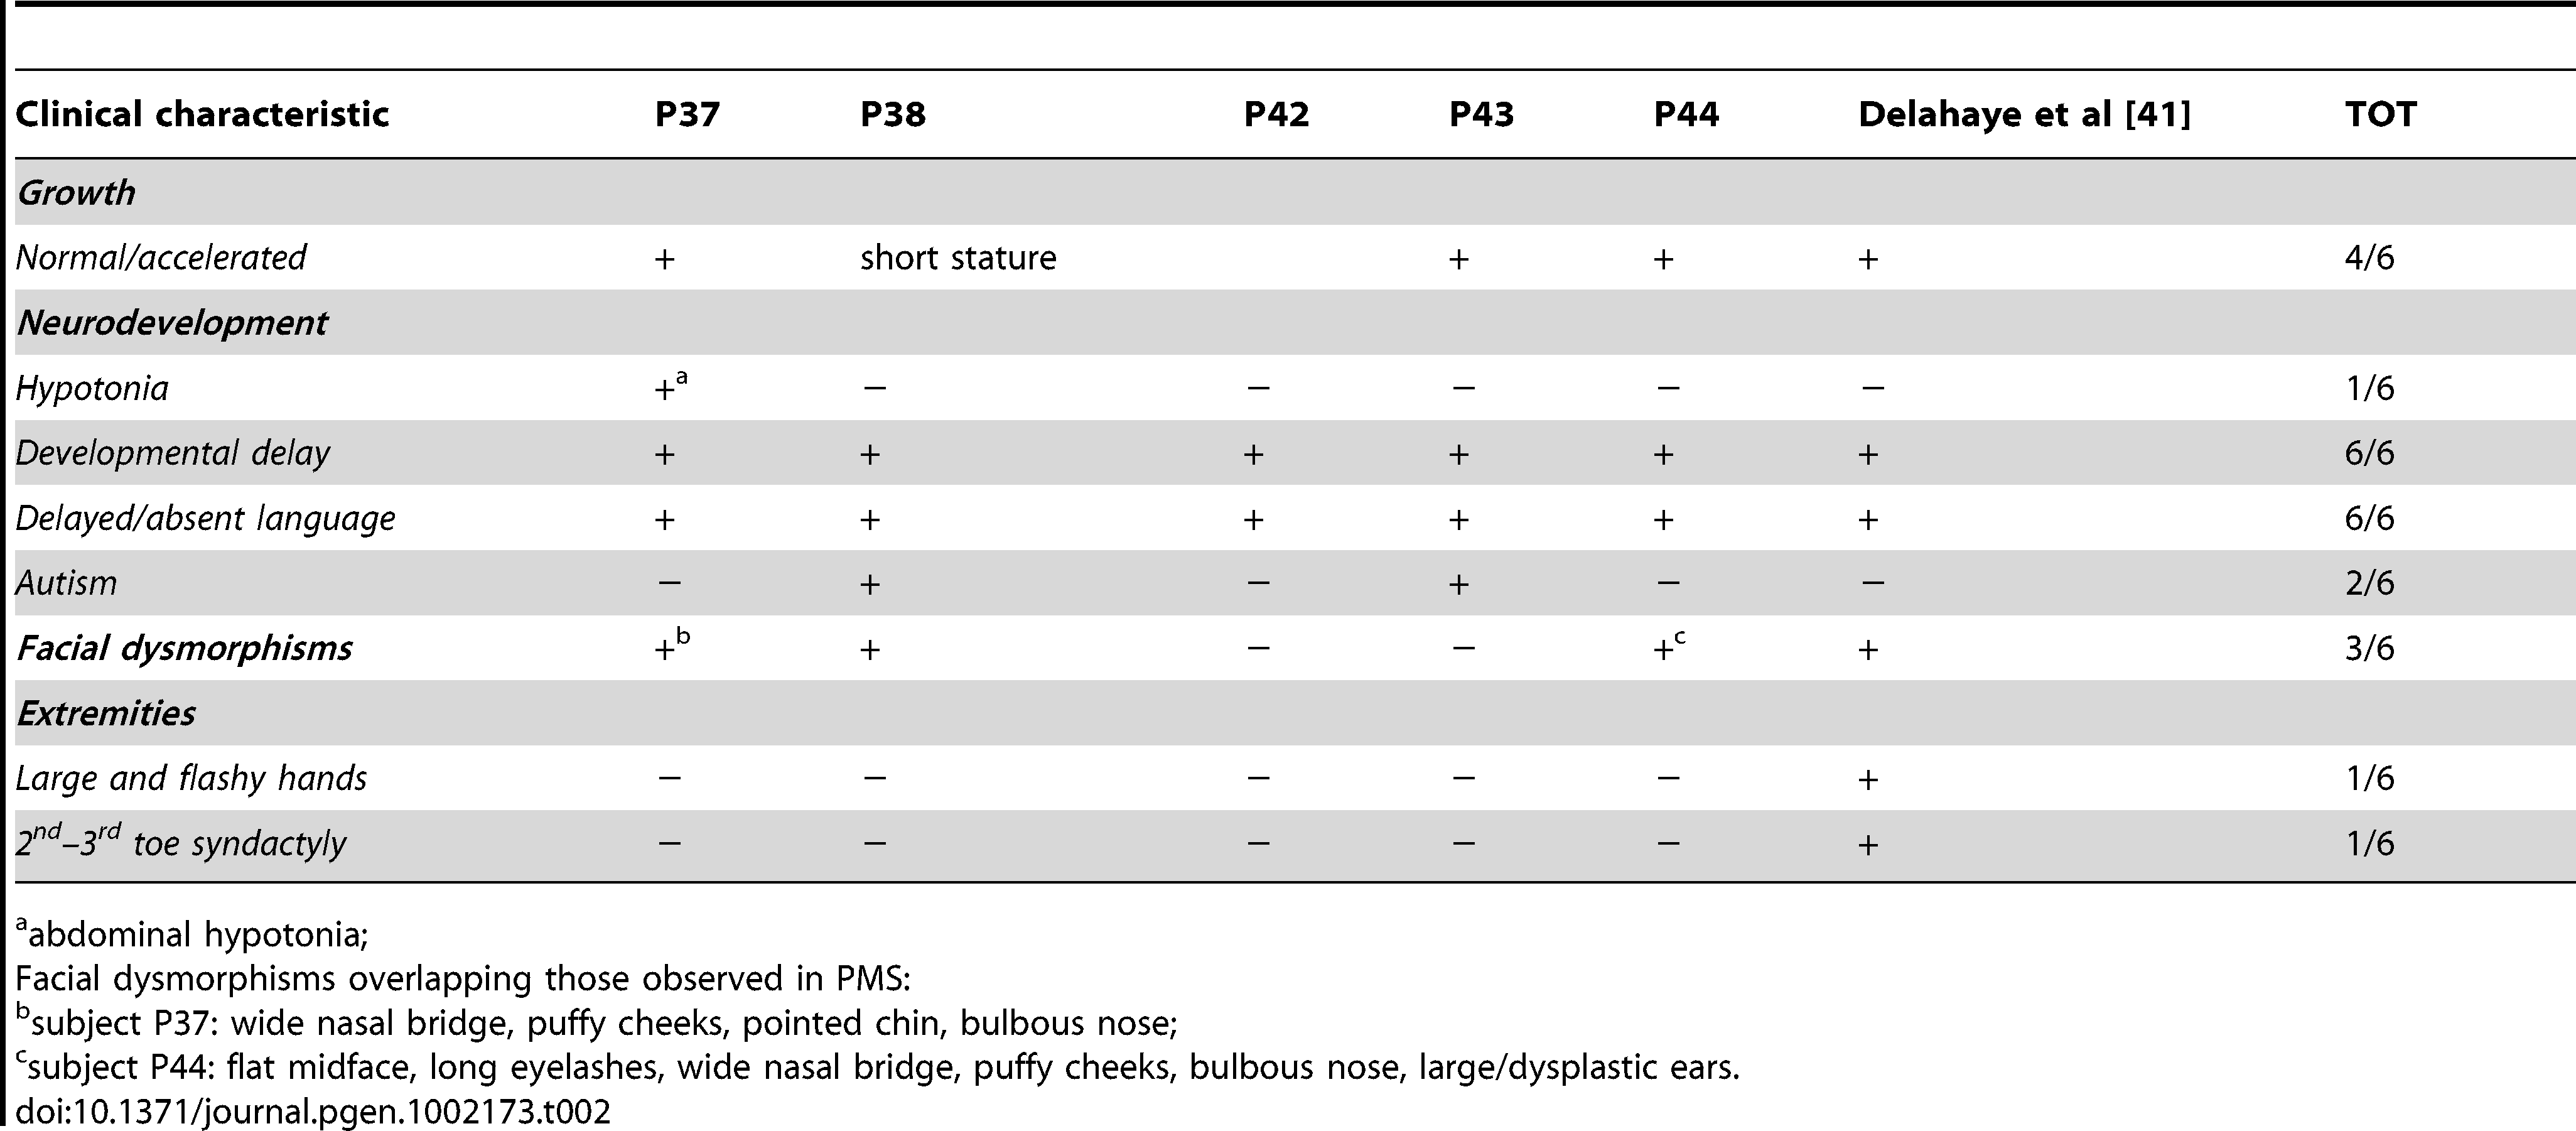 Clinical characteristic of PMS in subjects with interstitial 22q13 microdeletions.